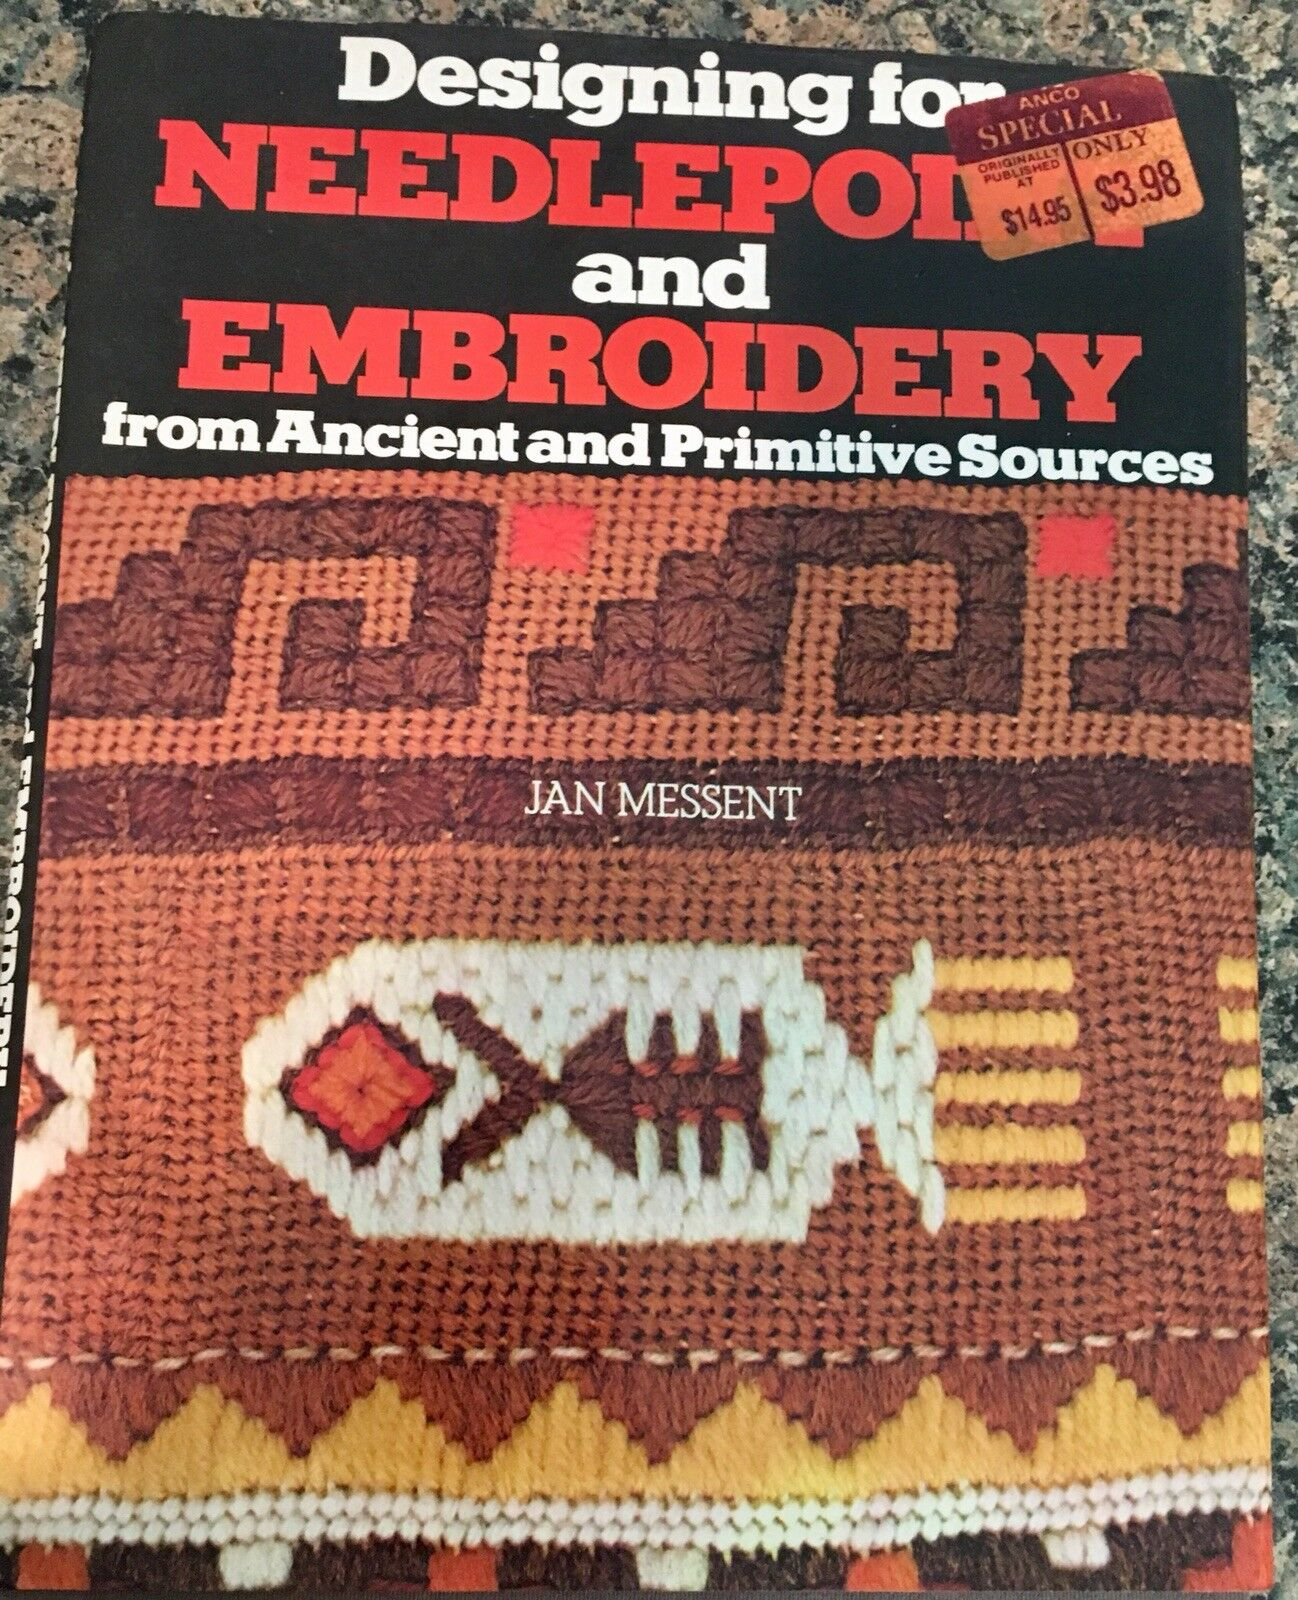 Designing for Needlepoint and Embroidery from Ancient and Primitive Sources  by Jan Messent (1976, Hardcover) | eBay